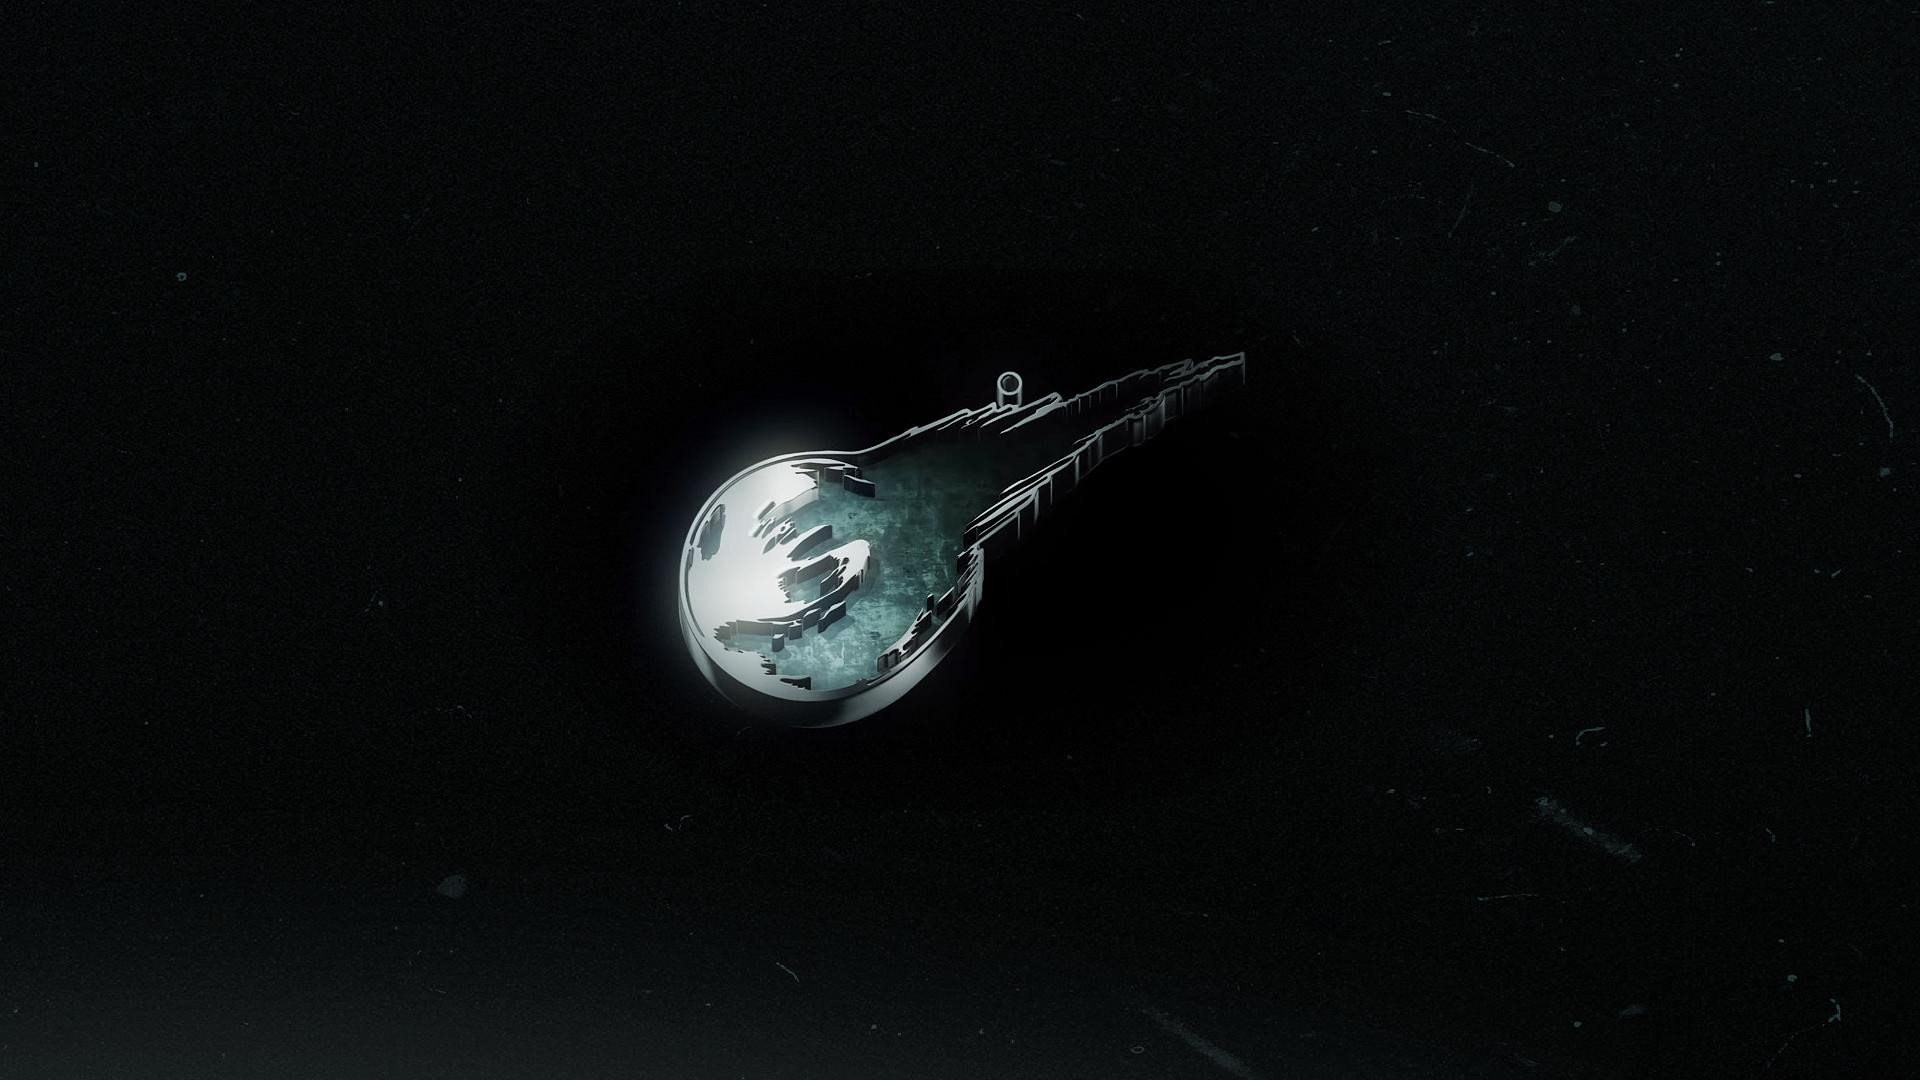 FF7 wallpaper ·① Download free wallpapers for desktop and ...